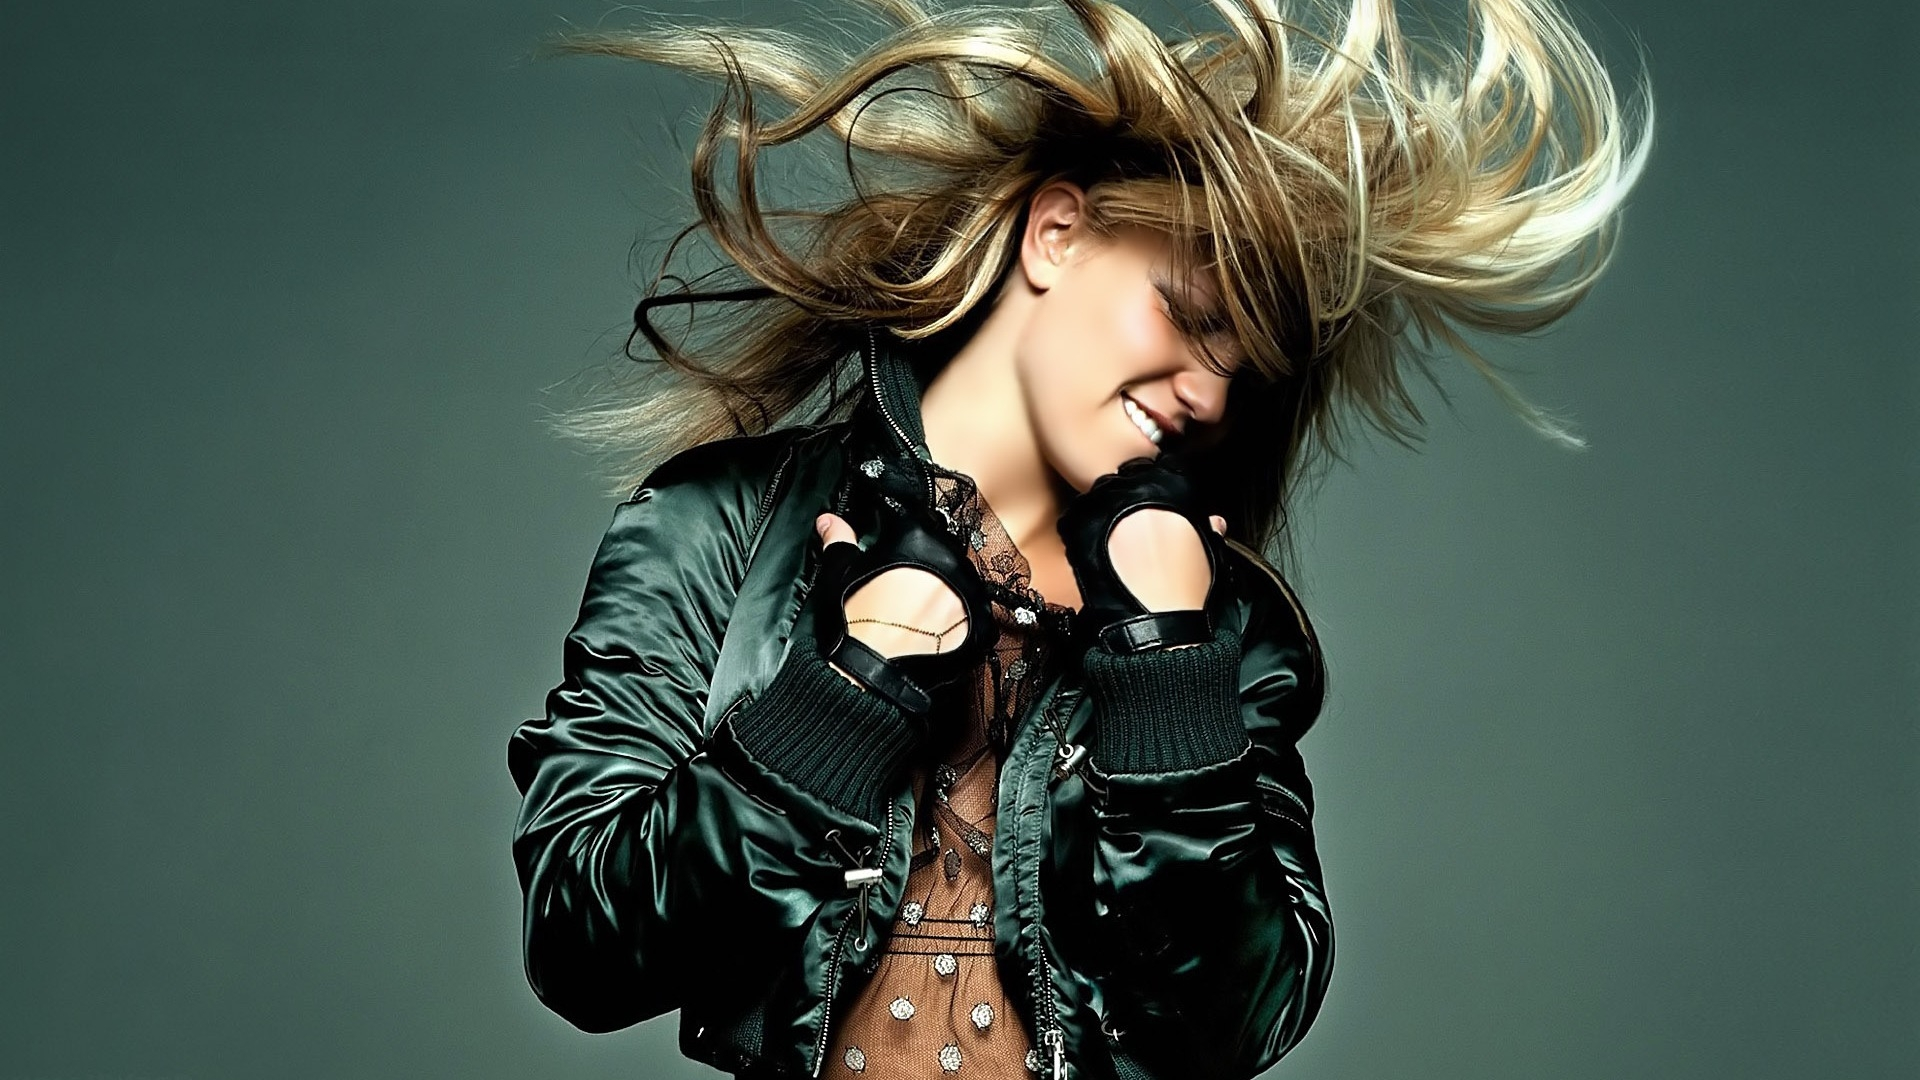 Download Wallpaper 1920x1080 Britney Spears, Hair, Jacket